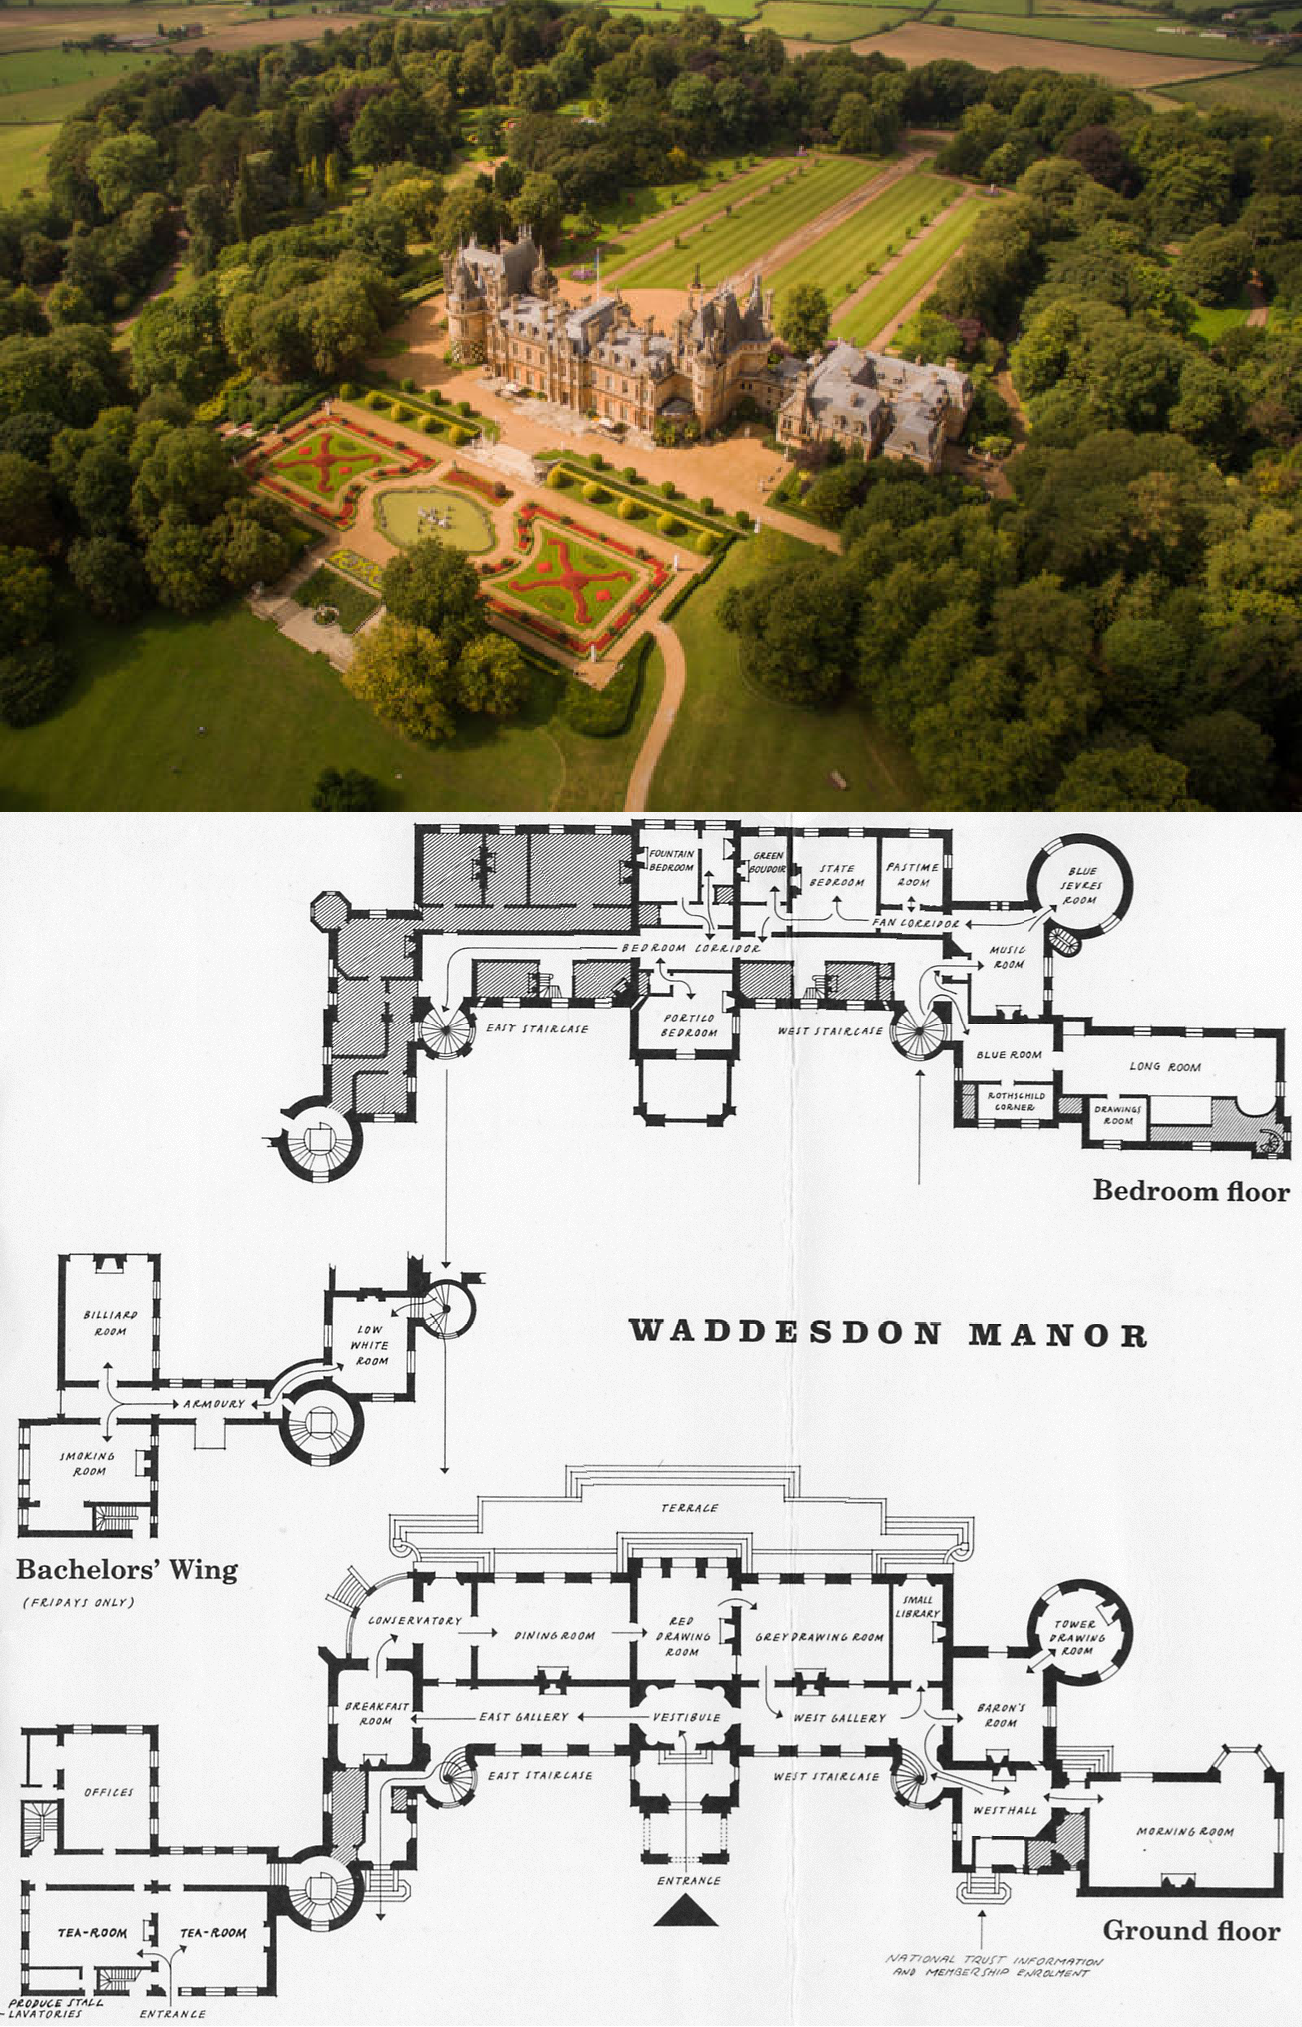 Waddesdon Manor England Castle Floor Plan Mansion Floor Plan Architectural Floor Plans